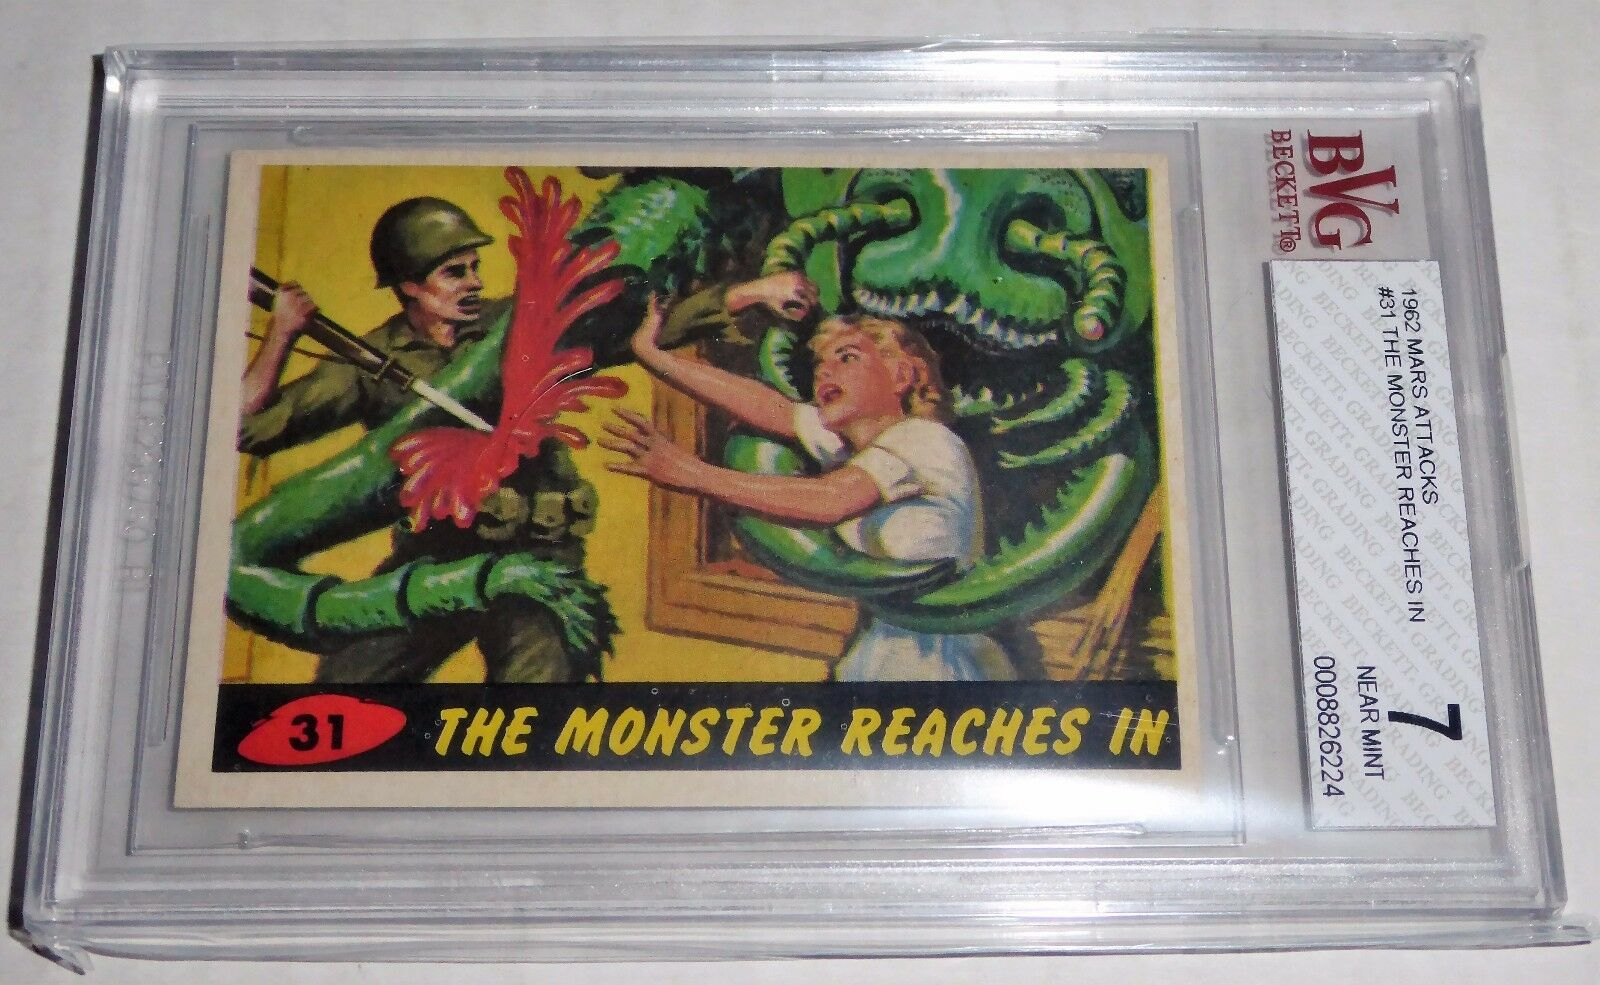 1962 Mars Attacks The Monsters Reach In #31 Mint BGS BVG 7 Like PSA Alien Horror